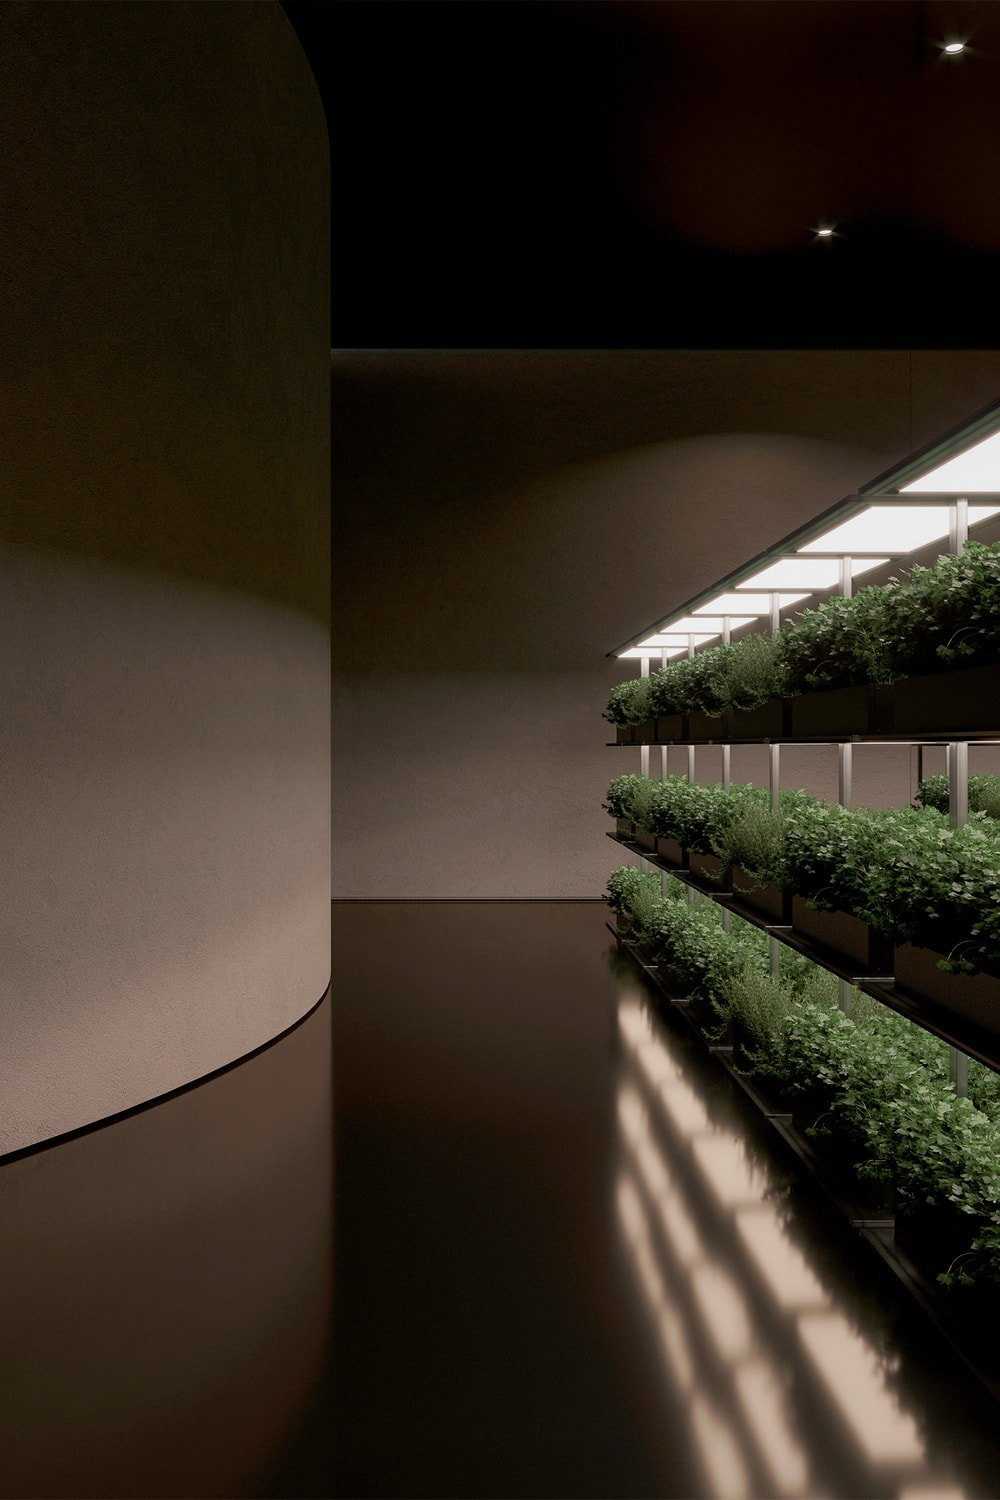 These rows of potted herbs and vegetation are lit with lamps that simulate sunlight.